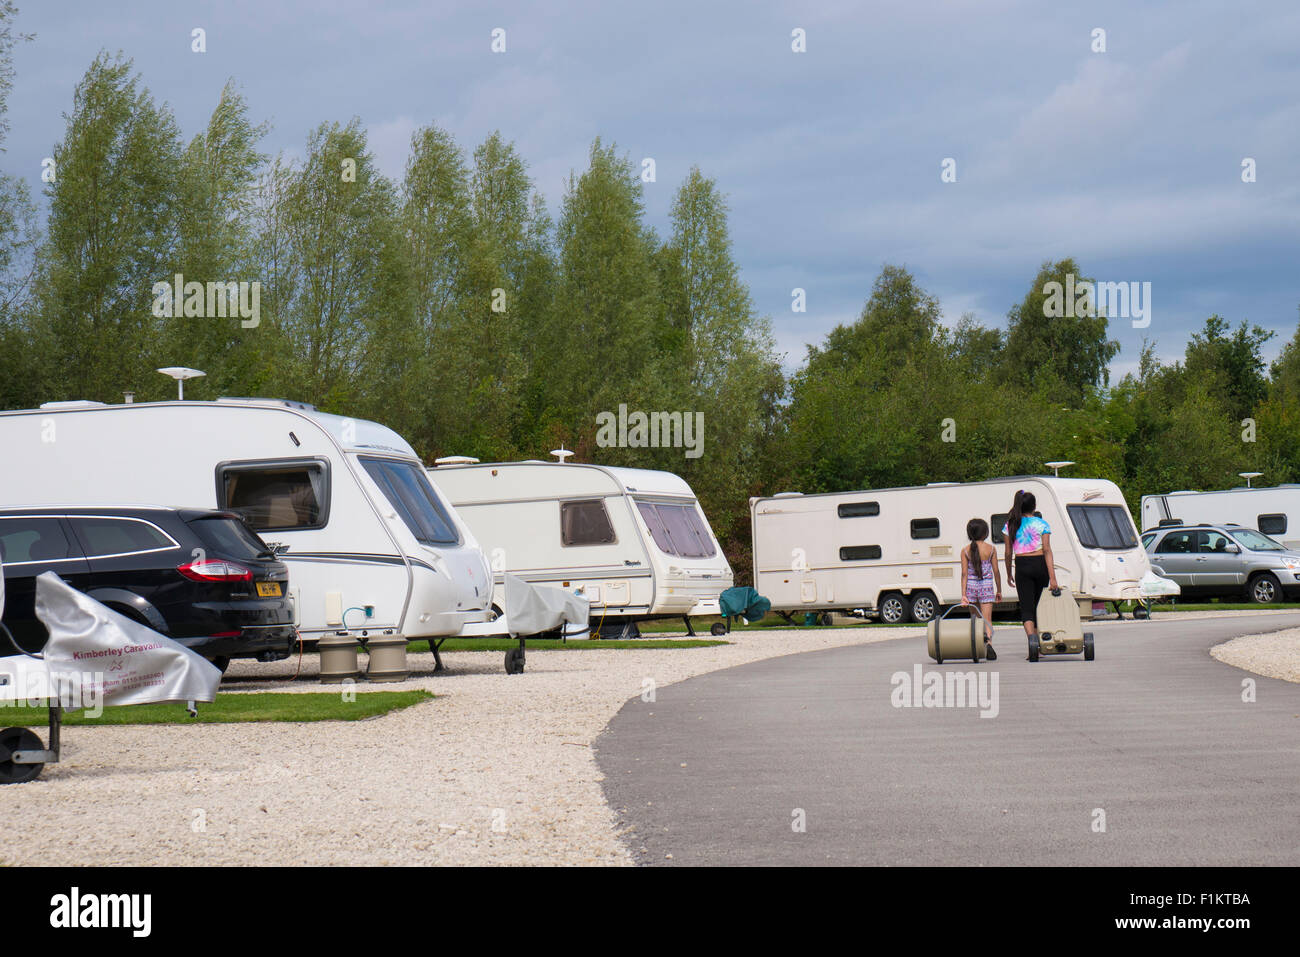 Caravan parks stock photos caravan parks stock images for Camel motors on park and ajo